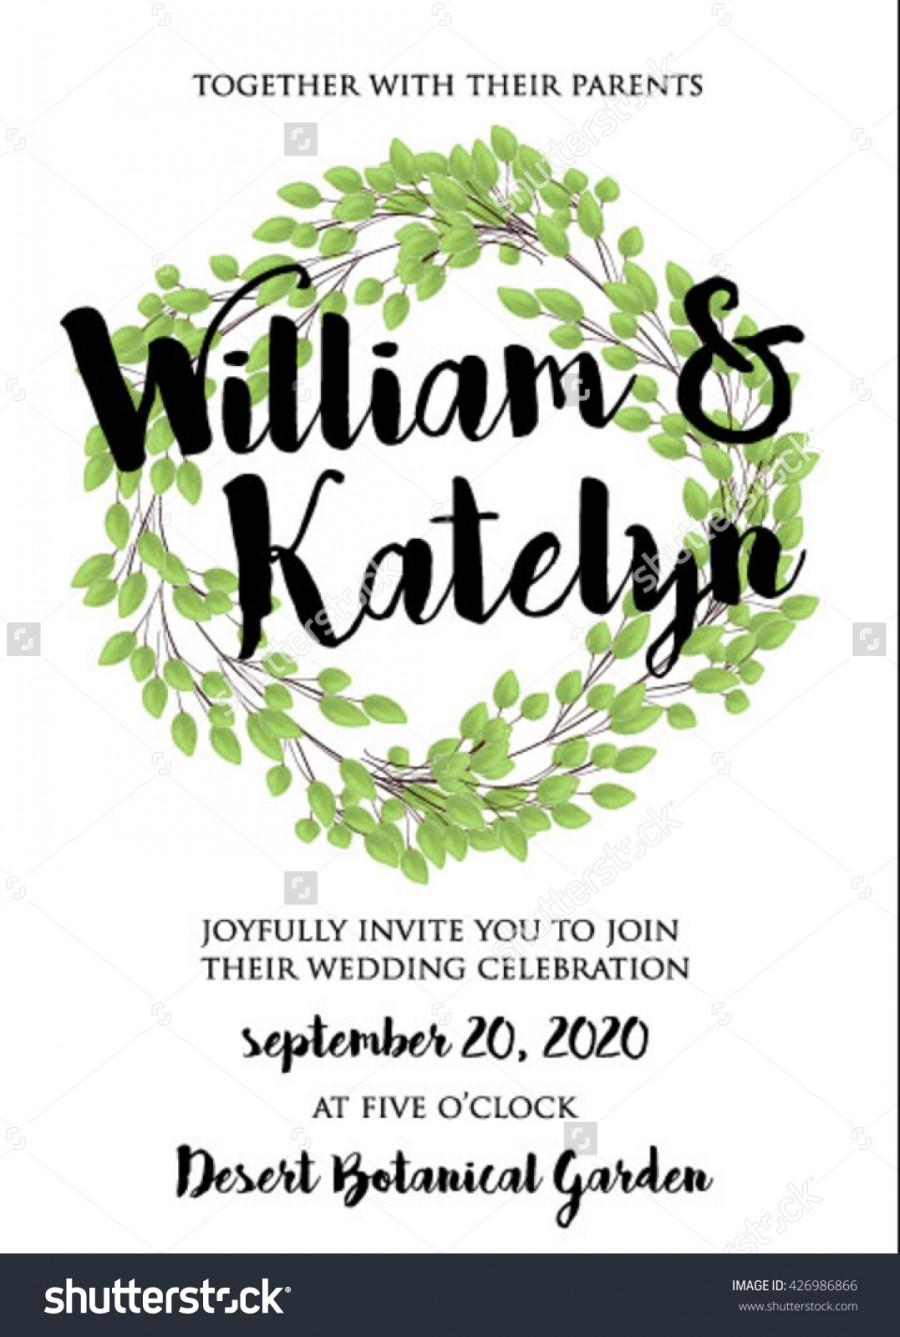 900x1337 Wedding Invitation, Thank You Card, Save The Date Cards. Wedding